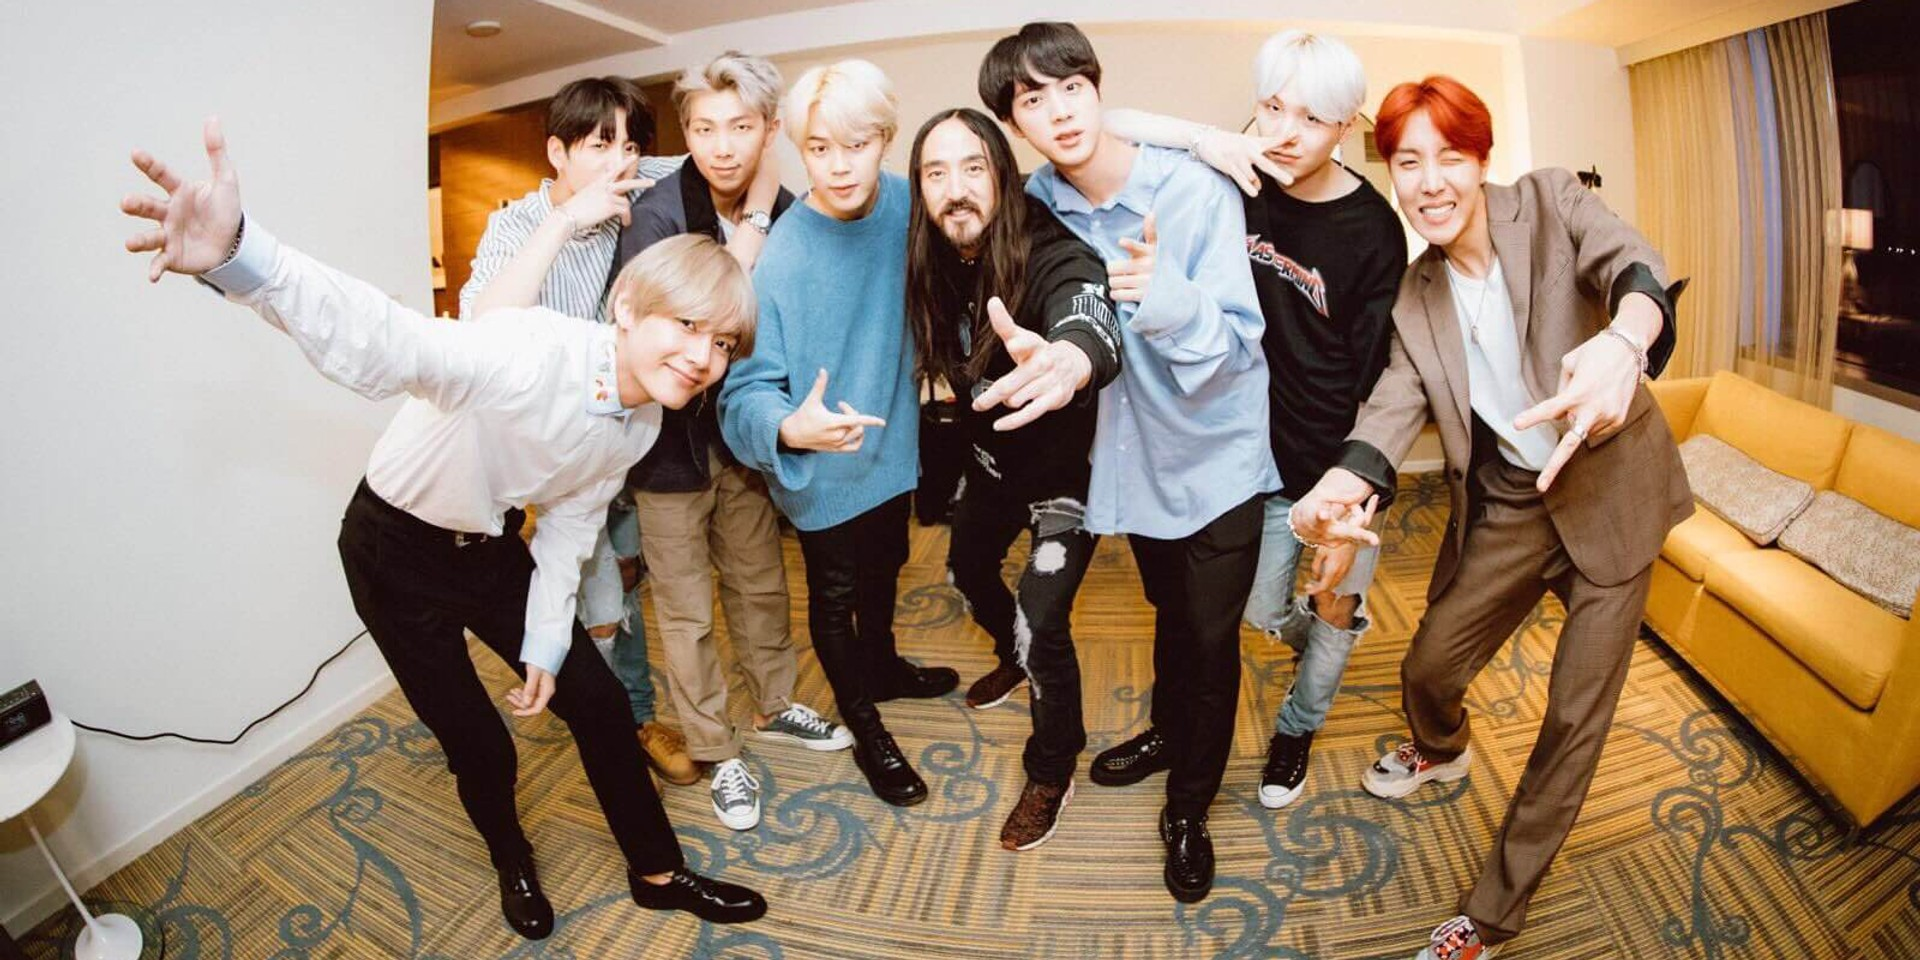 Steve Aoki thanks BTS and fans with Celebration Megamix for 1 billion views of 'Mic Drop' remix on YouTube